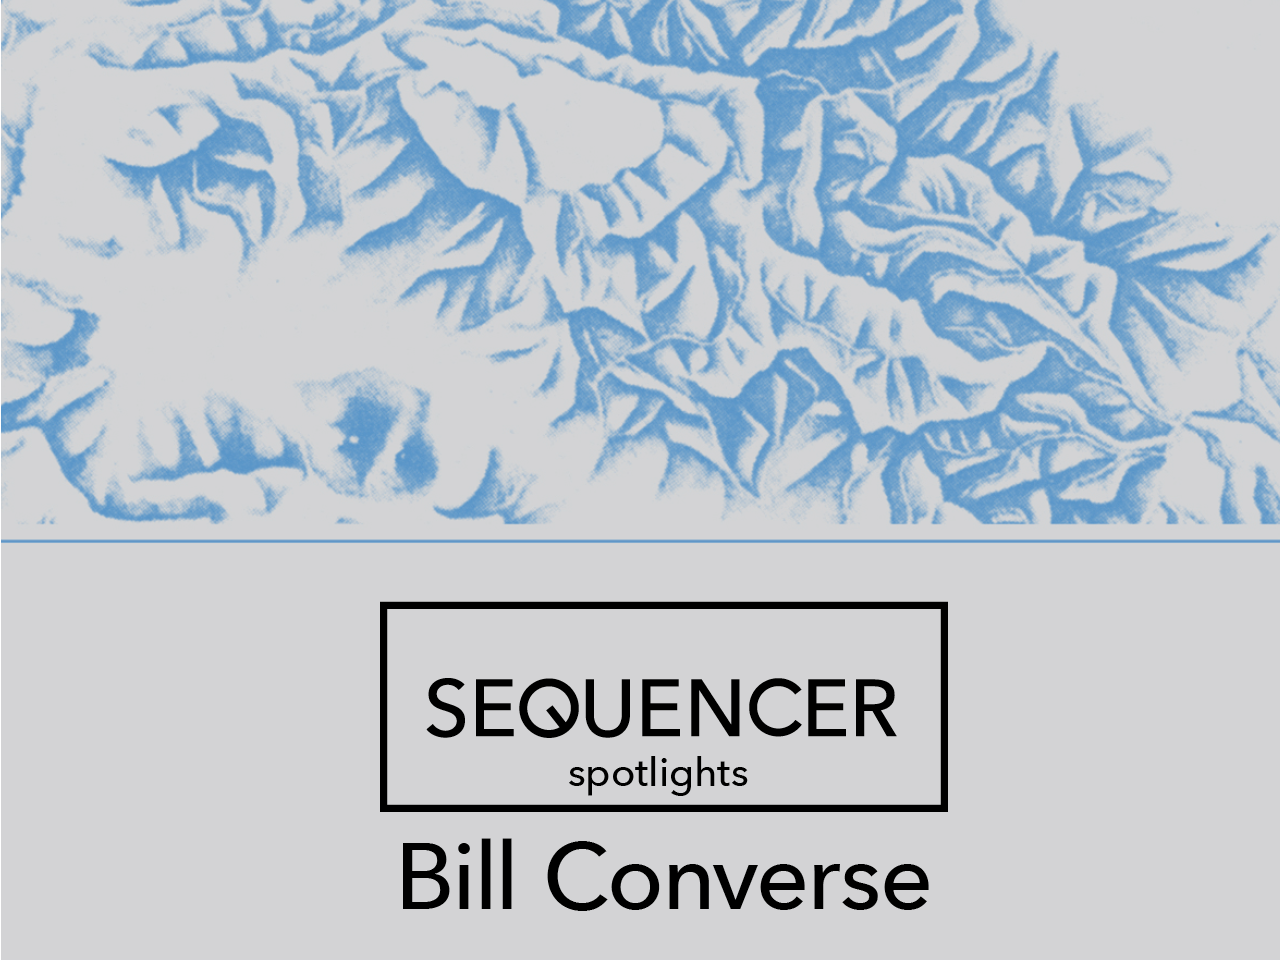 bill converse sequencer spotlight